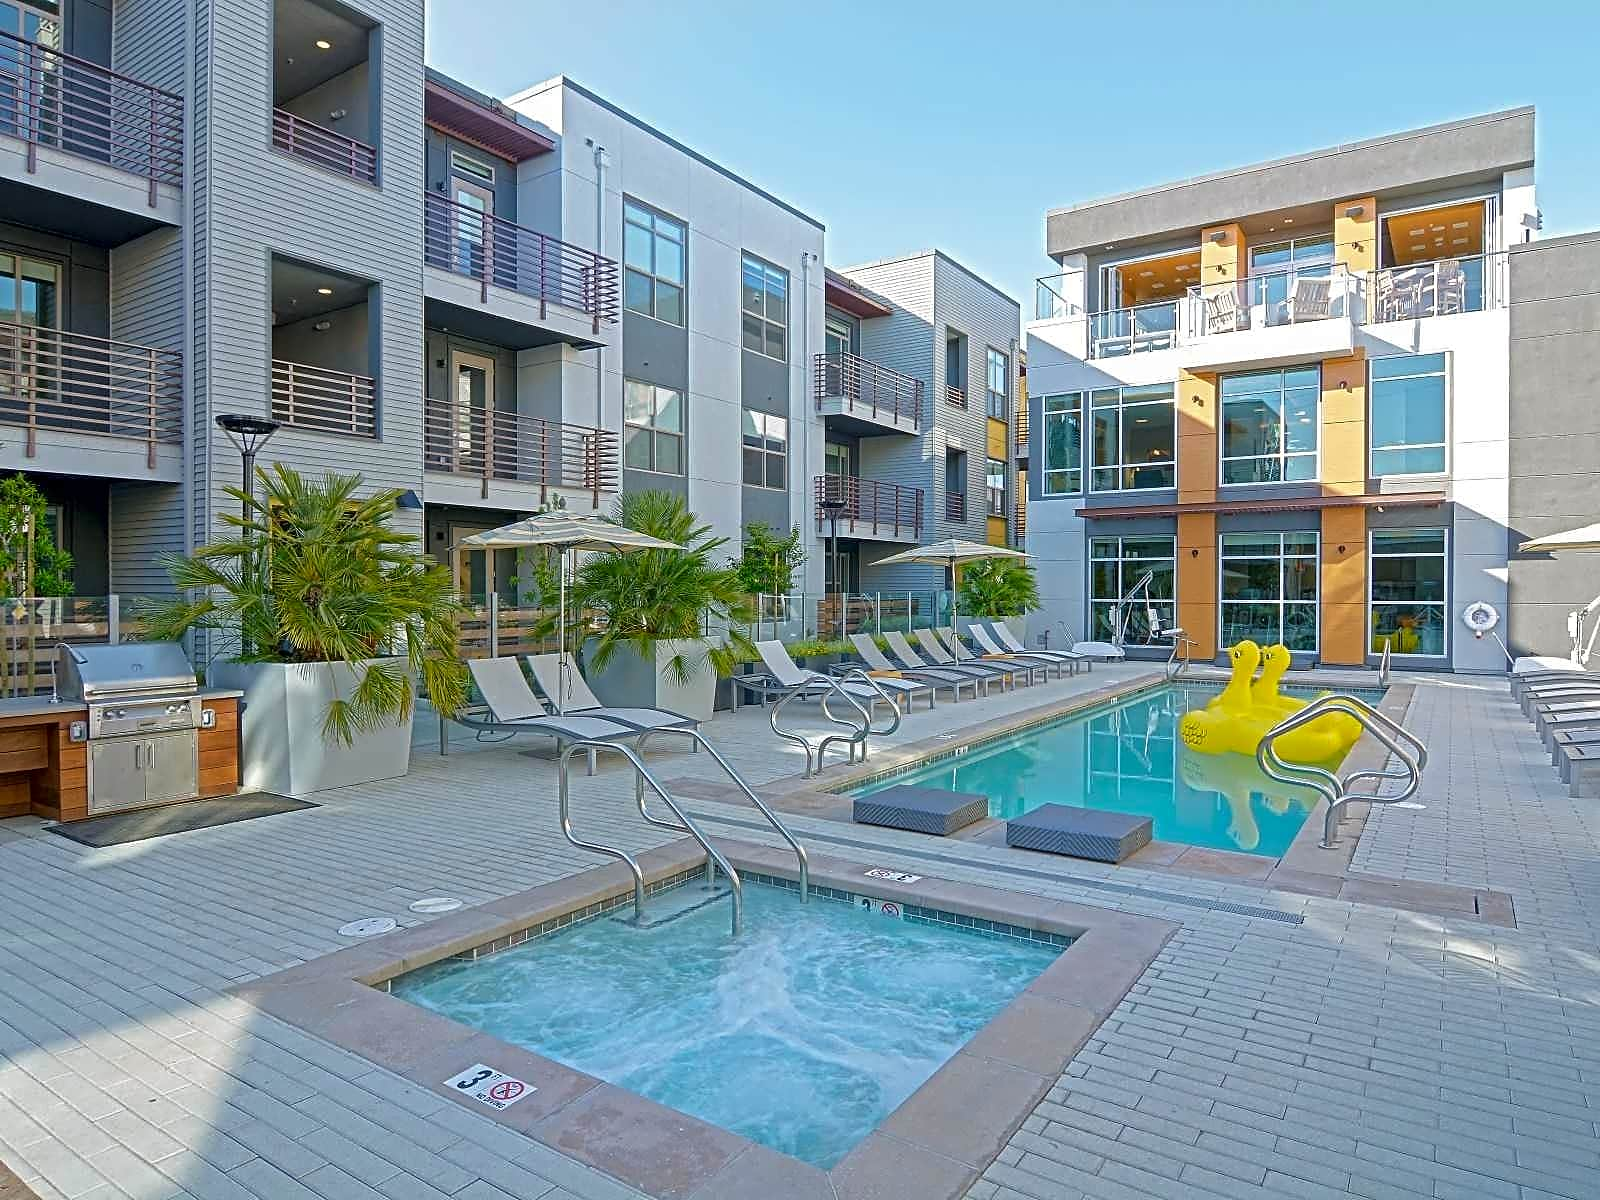 Apartments Near Stanford Elan Menlo Park Luxury Apartments for Stanford University Students in Stanford, CA